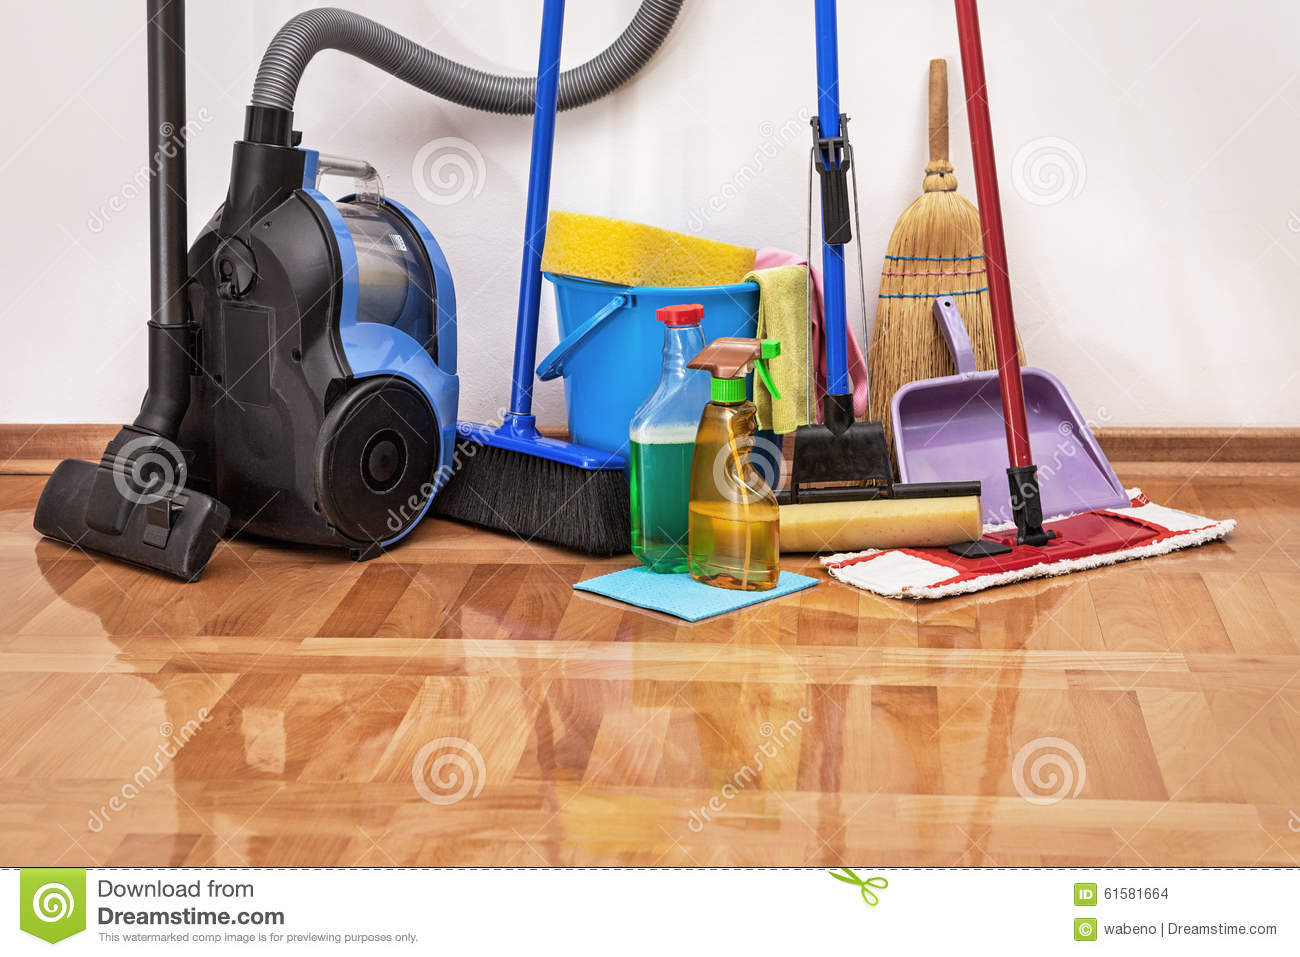 Cleaning Accessories On Floor Room Stock Photo  Image 61581664